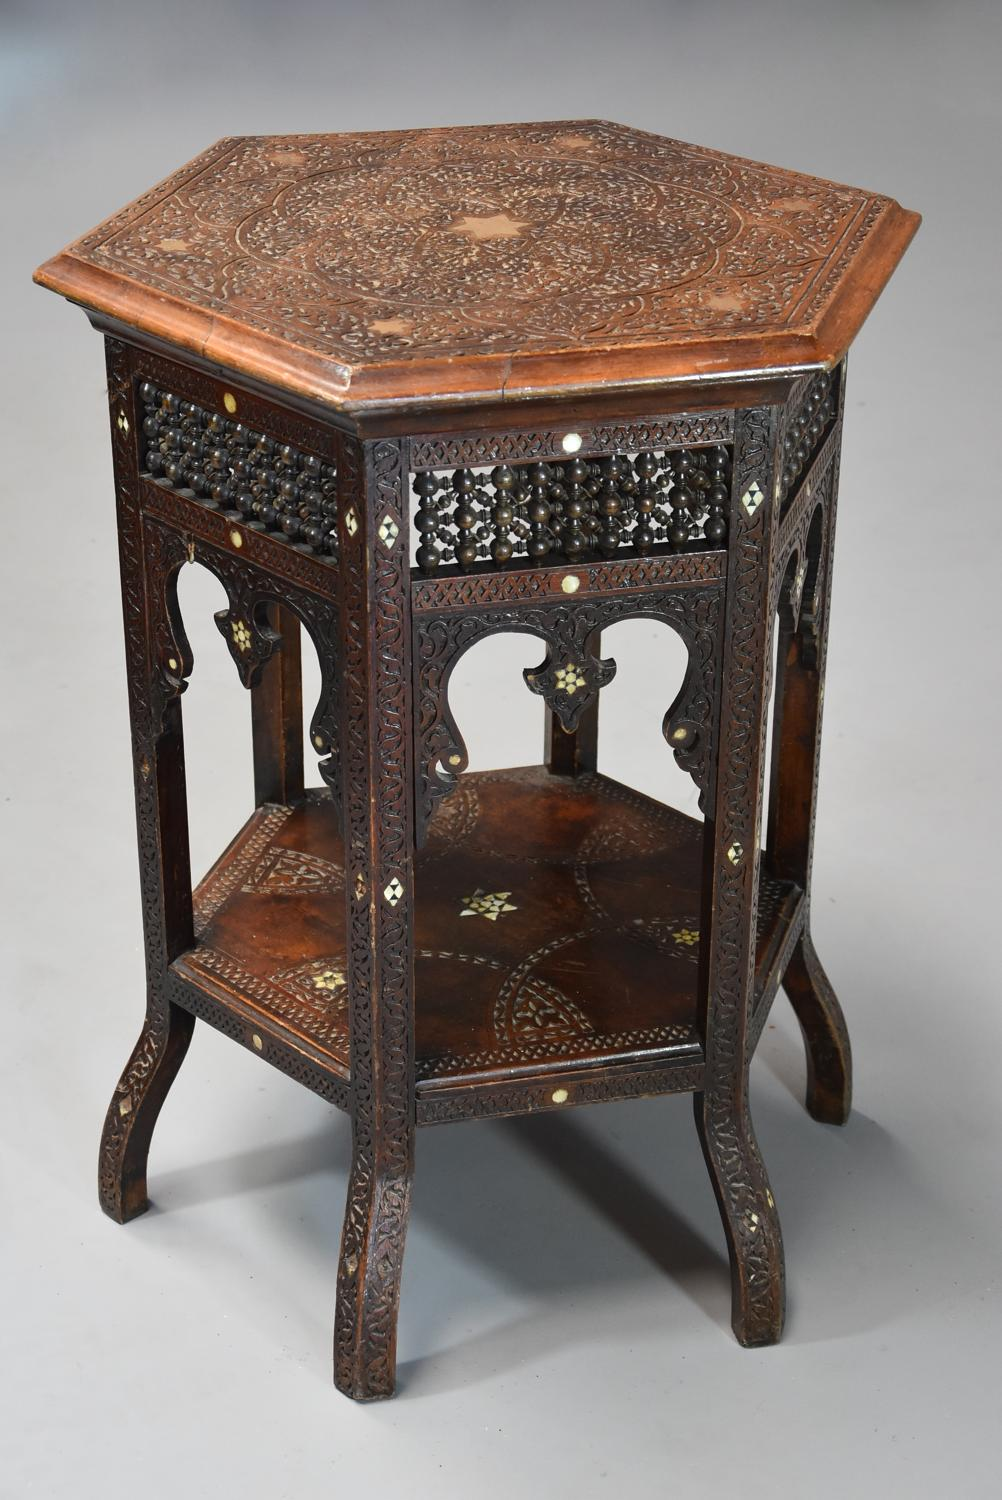 Late 19th century hexagonal Moorish table